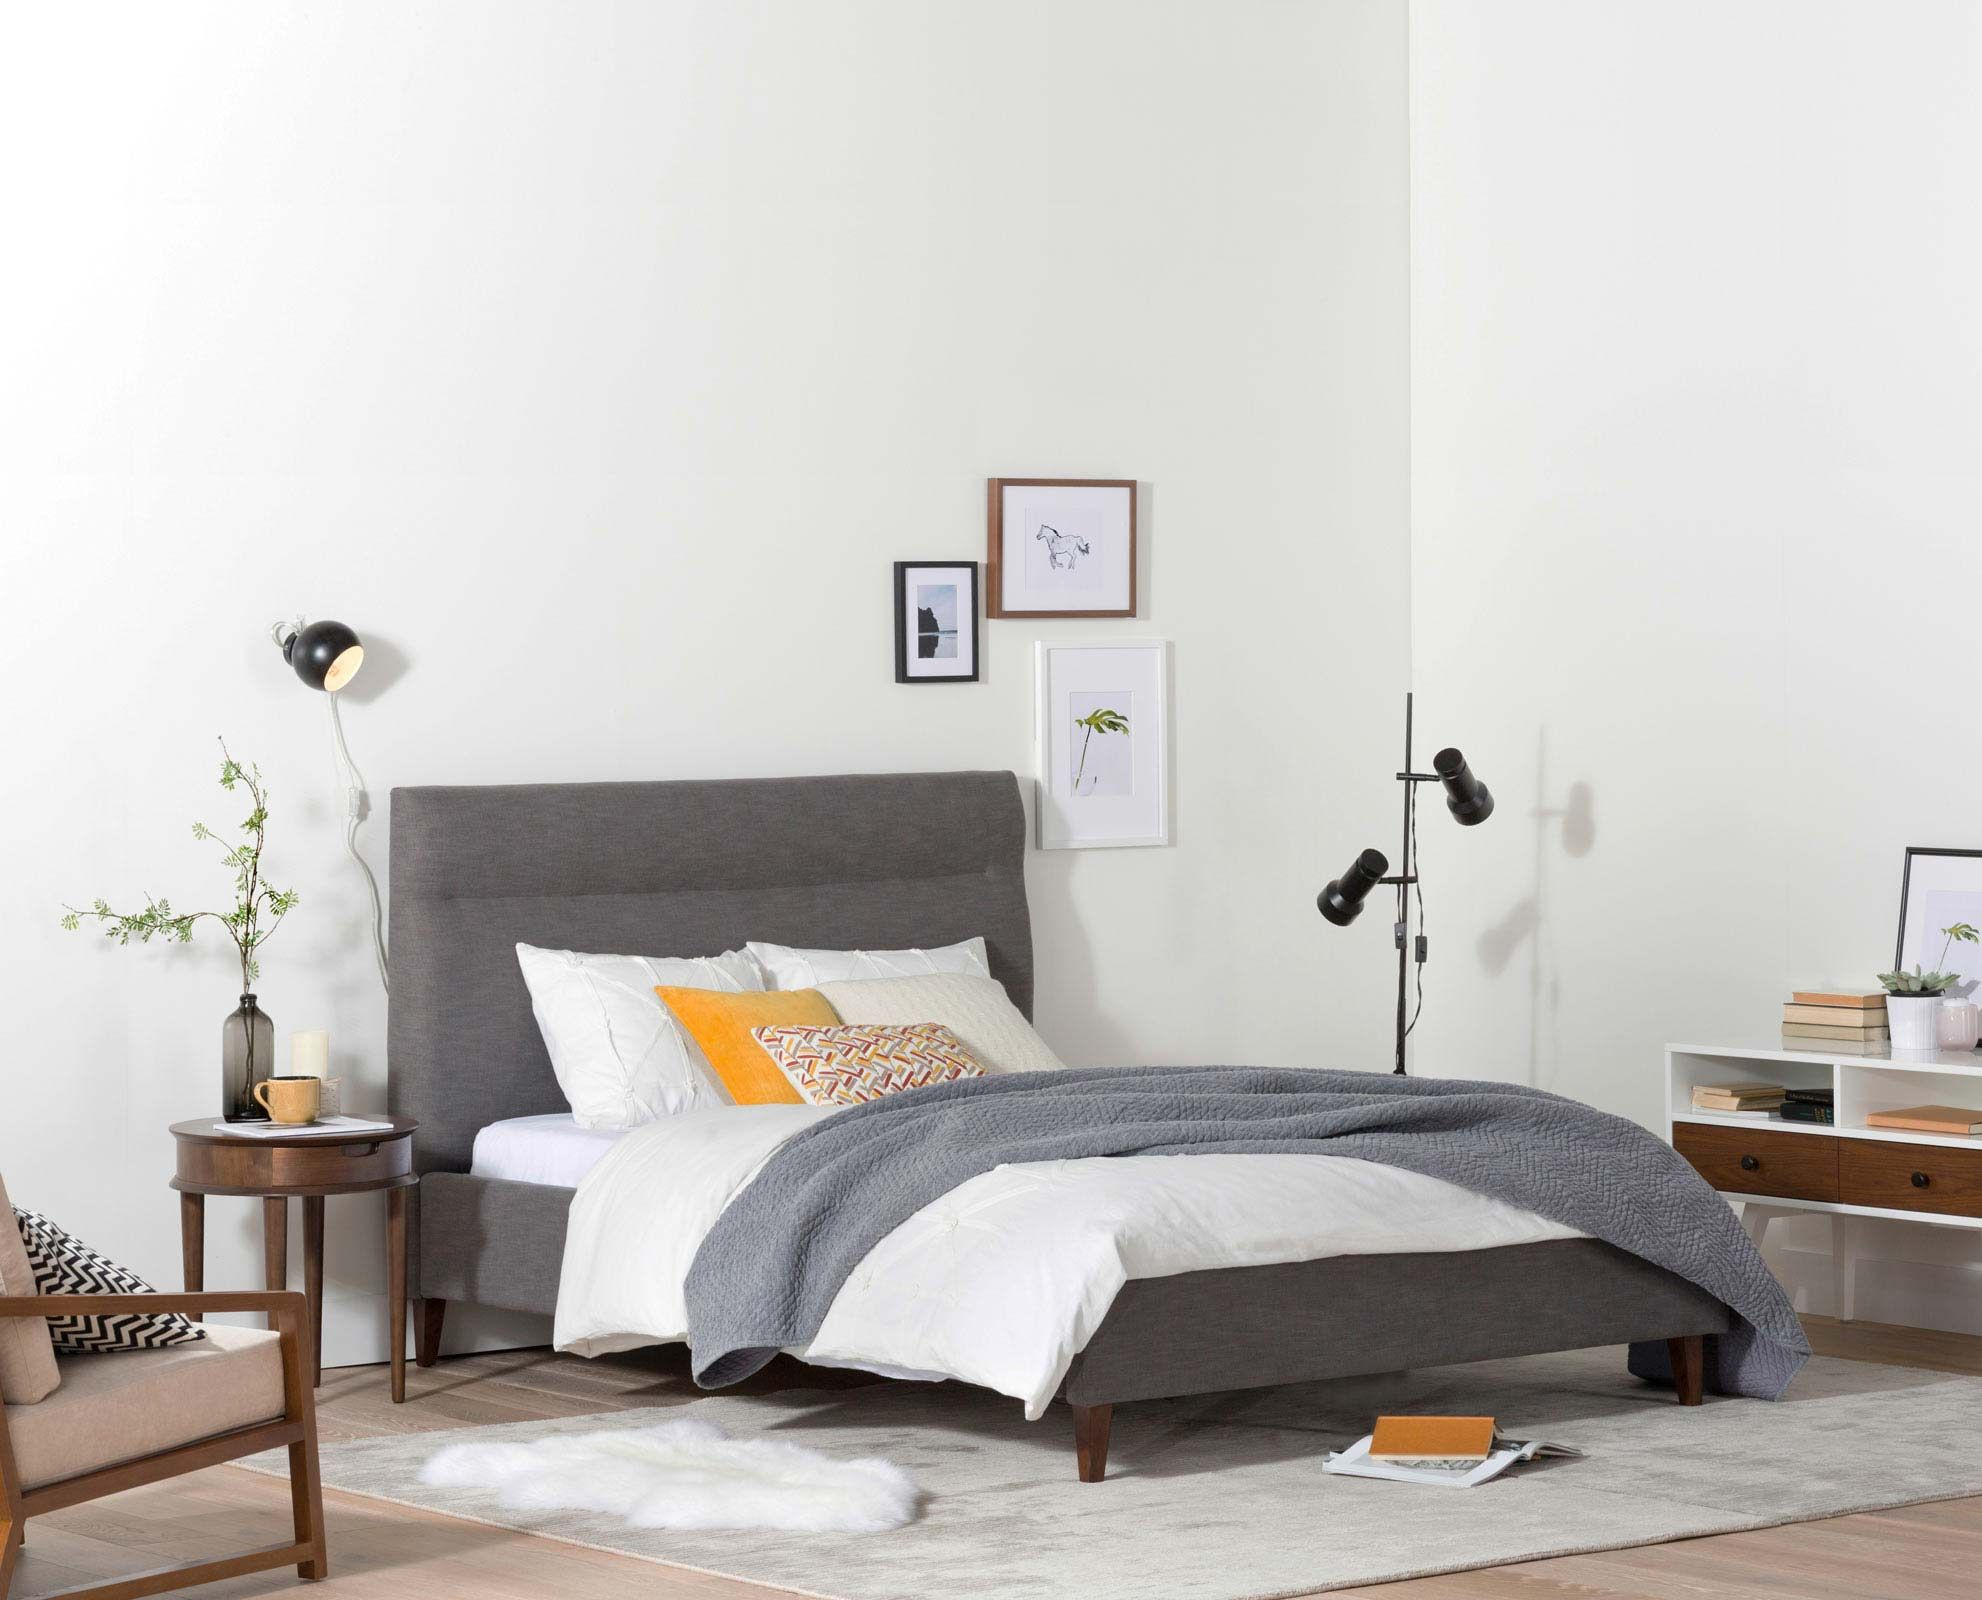 Curate A Modern Bedroom With The Tambur Bed From Scandinavian Designs. The  Tall Headboard And